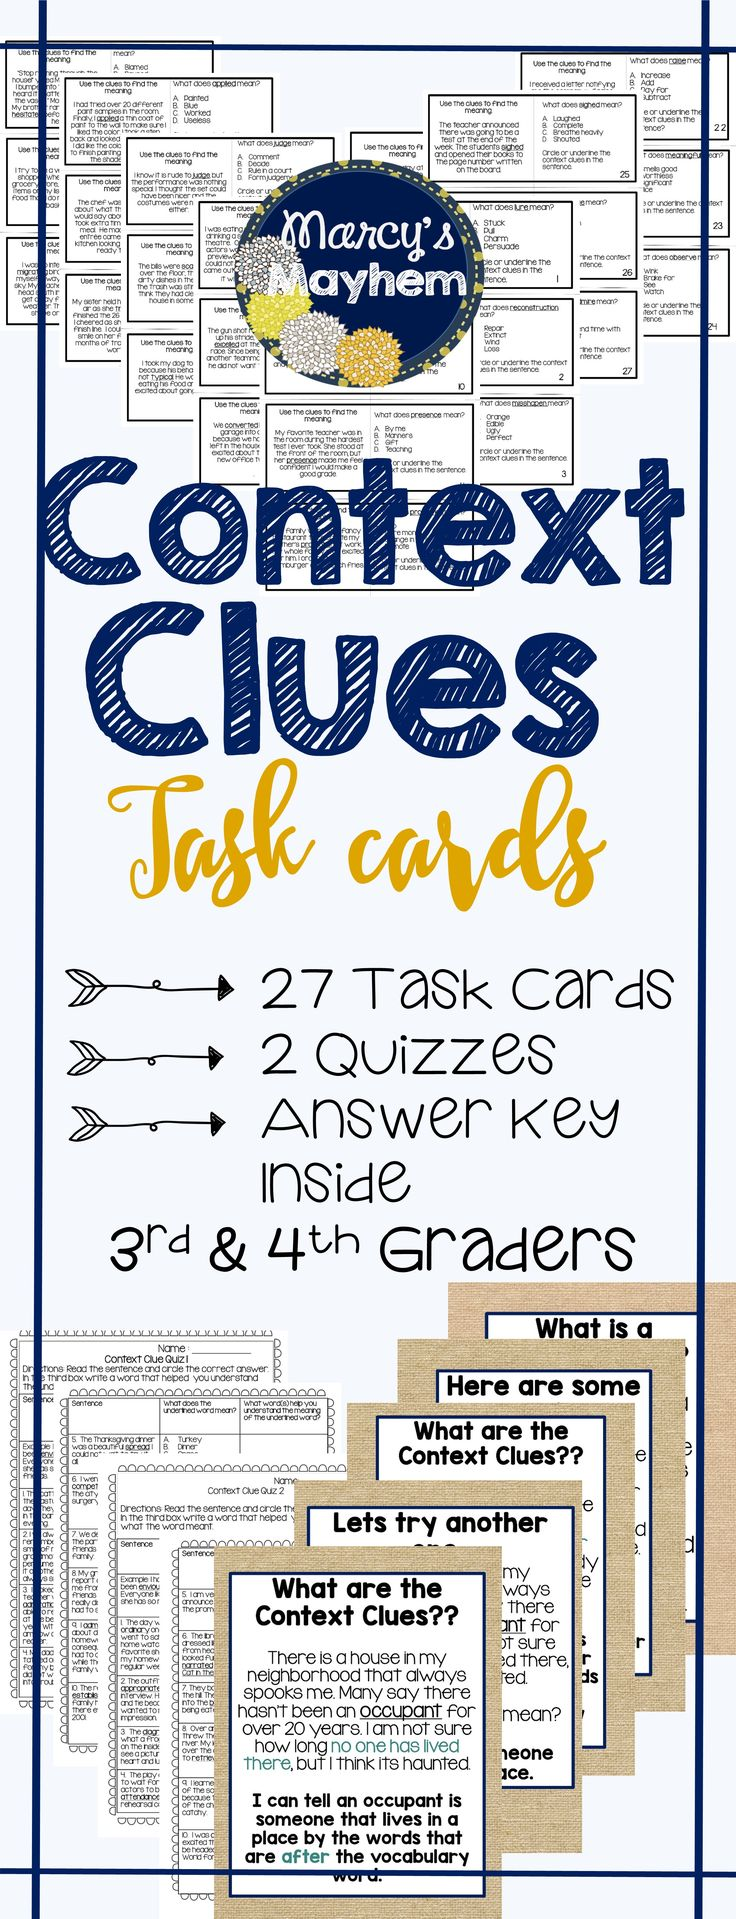 worksheet Context Clues Worksheets 8th Grade 1000 ideas about context clues games on pinterest this pin is great for showing 3rd 4th graders how to use clues